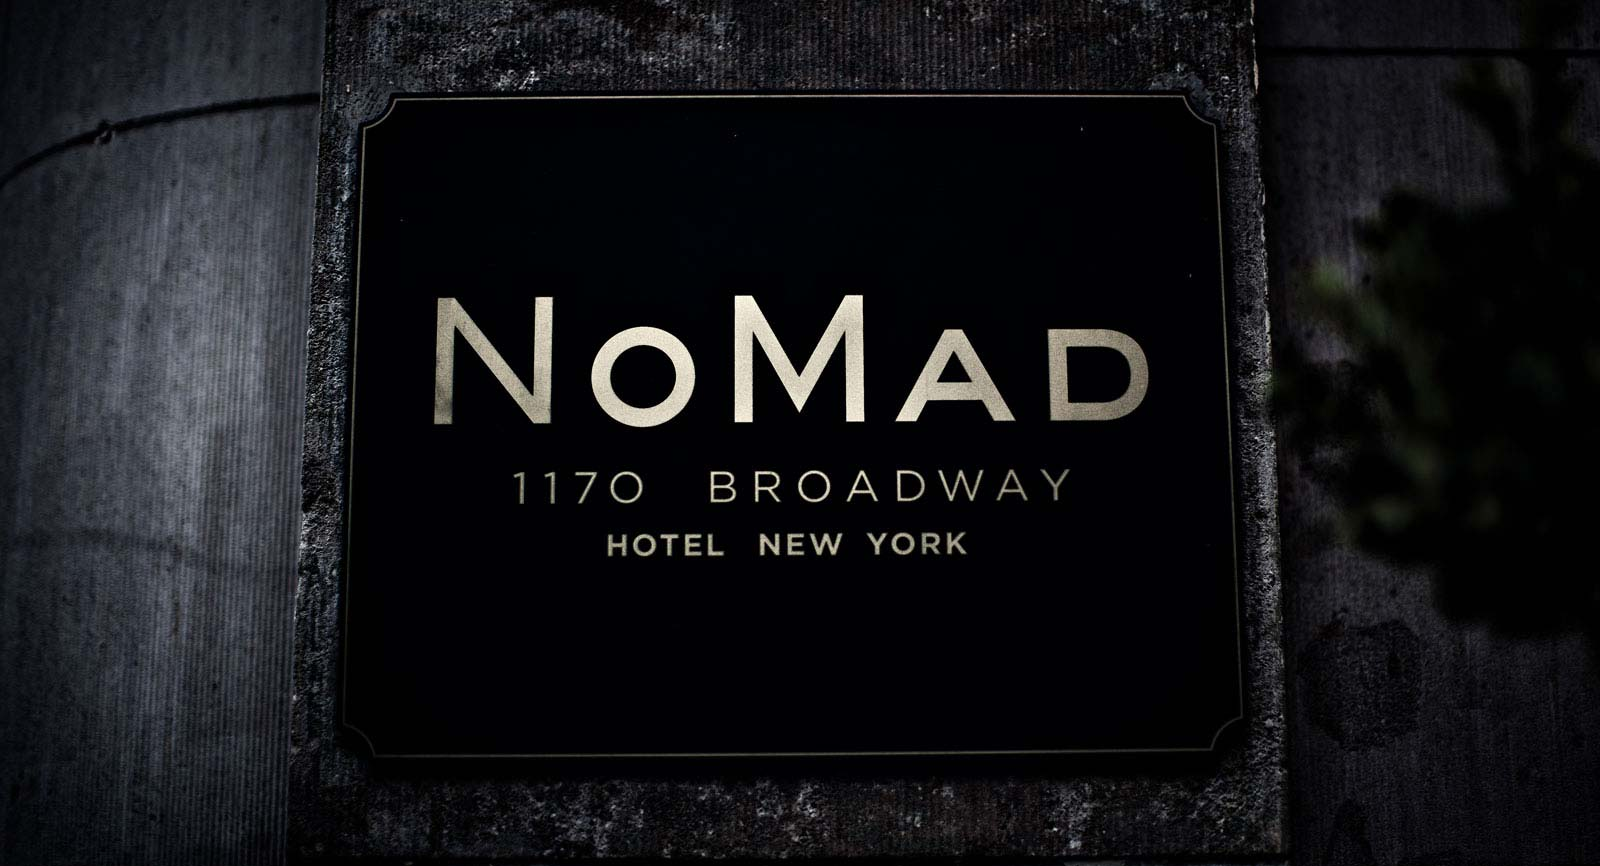 New York Nomad